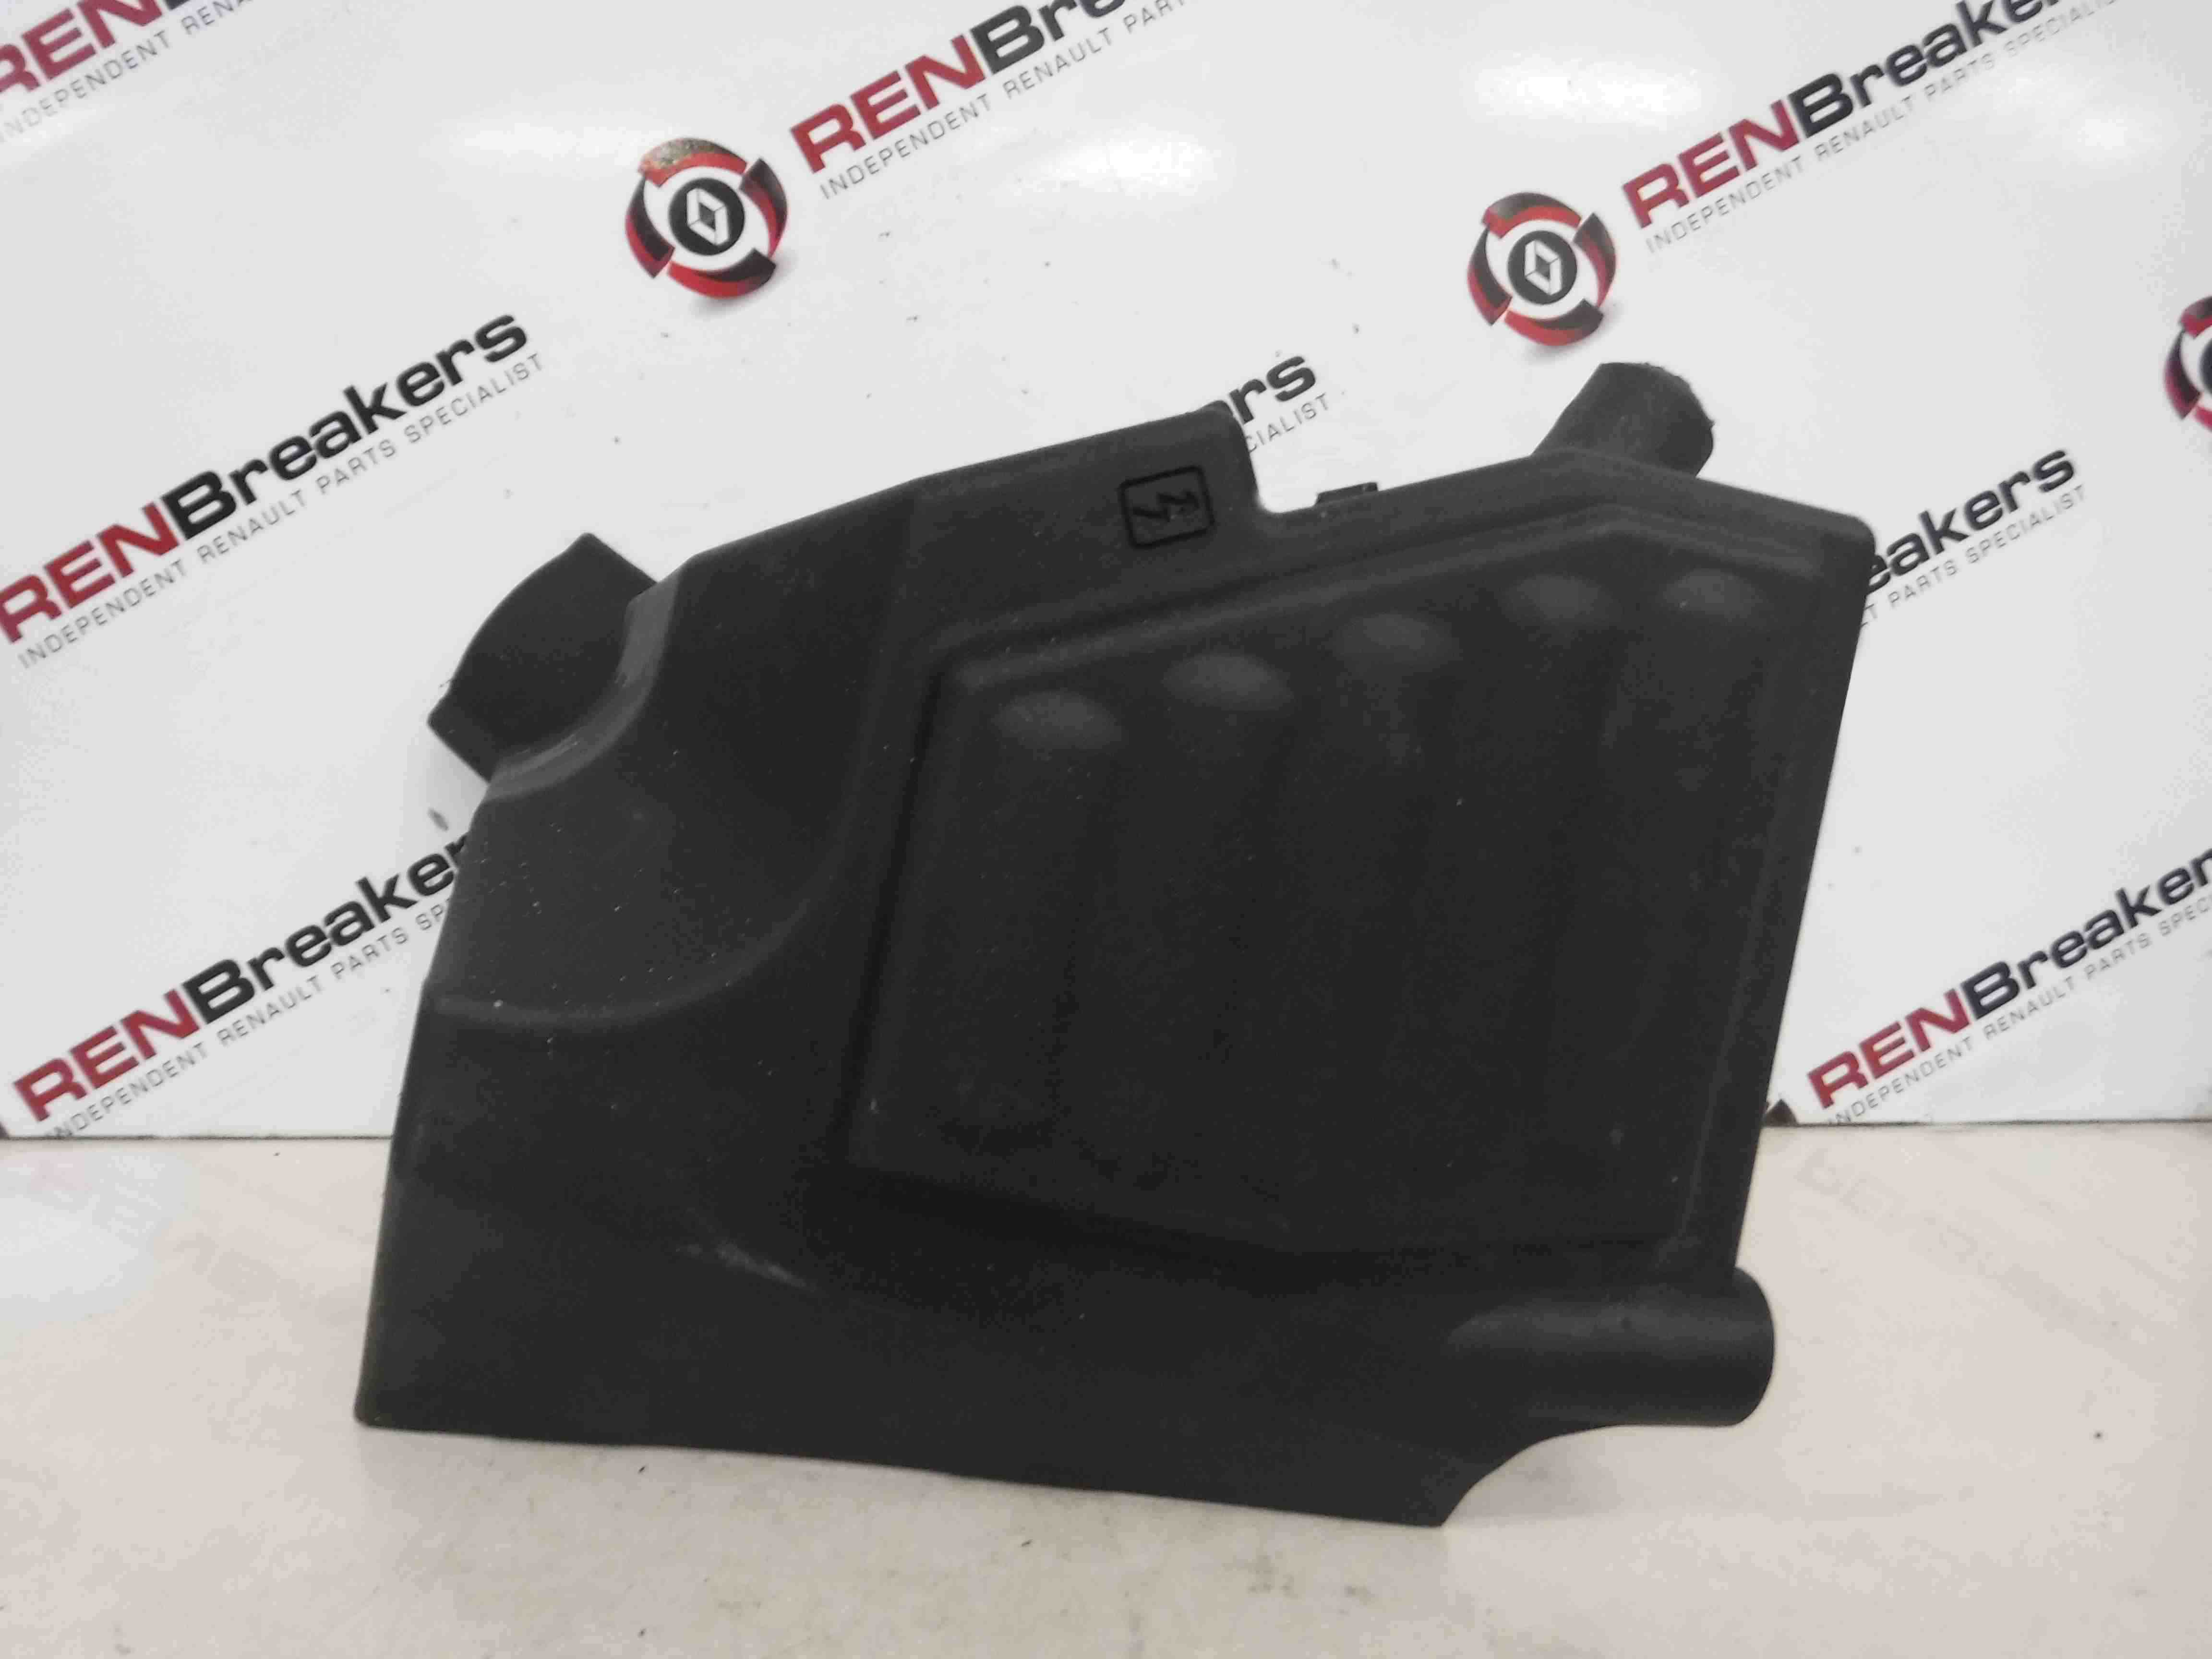 Renault Clio Mk2 2001-2006 Engine Bay Fuse Box Cover Plastic - Store - Renault Breakers